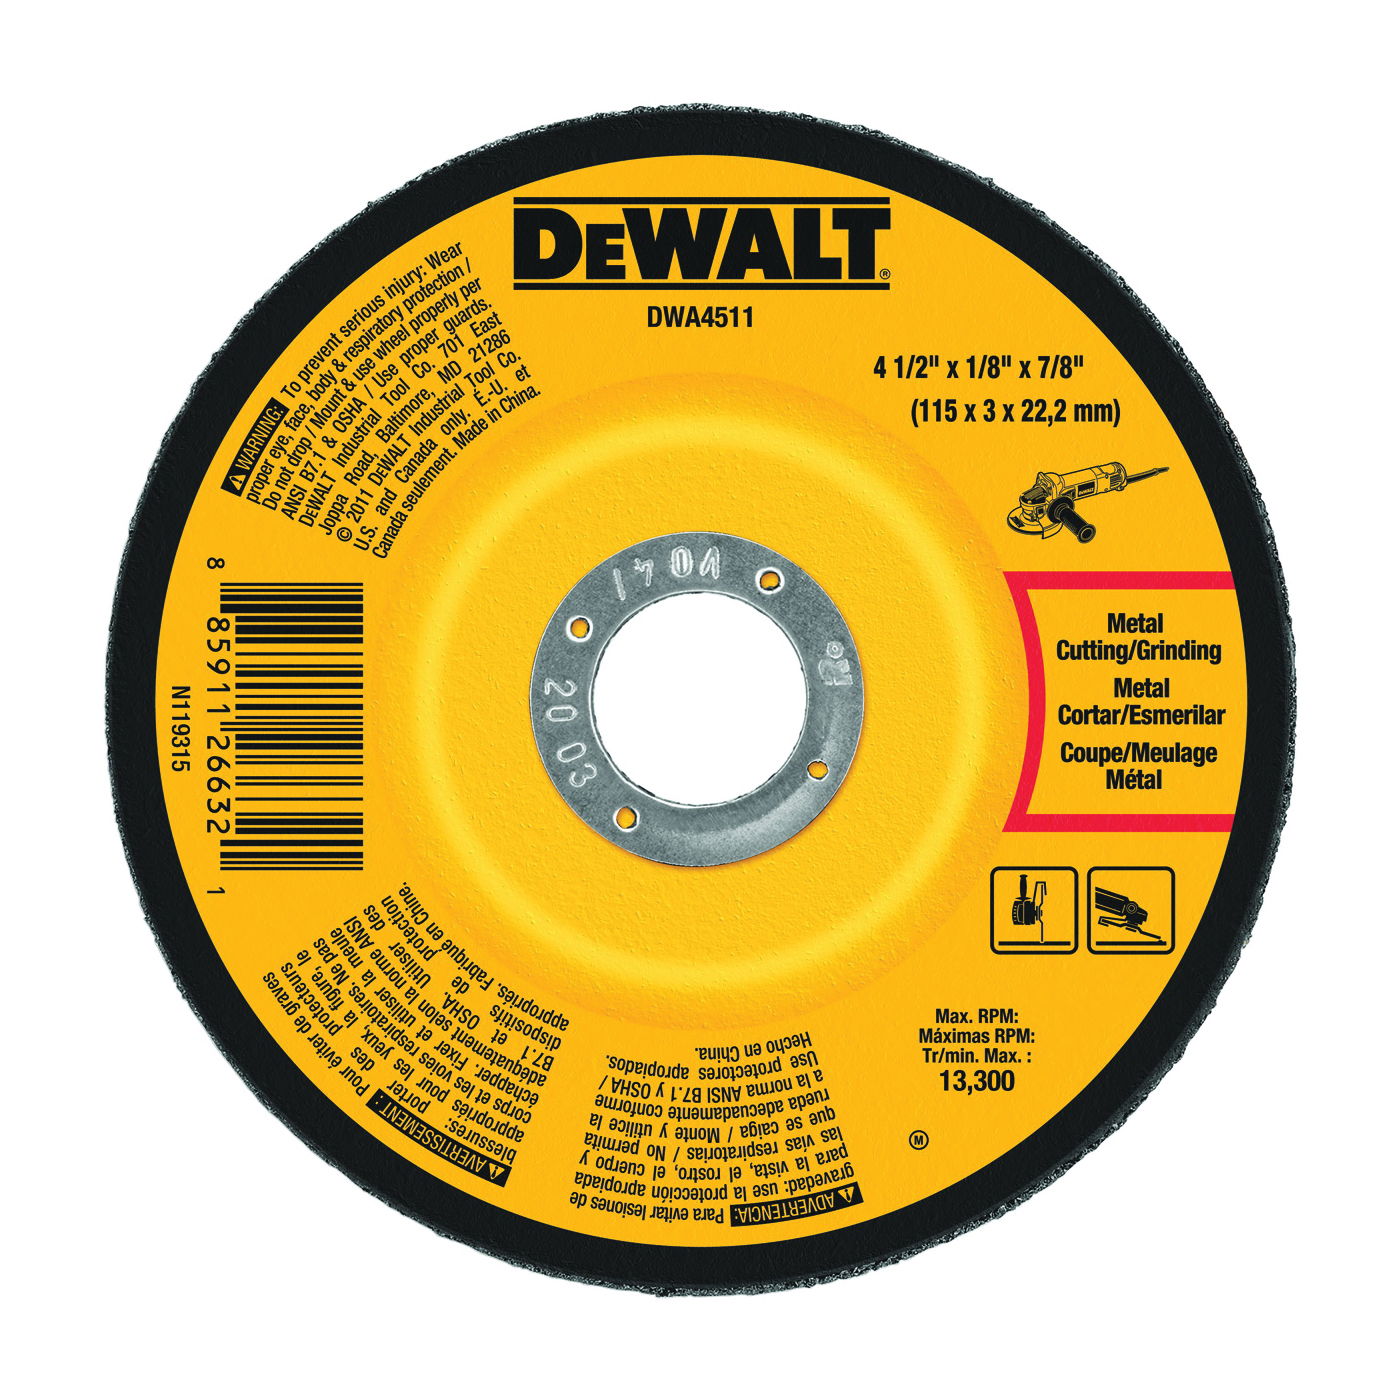 Picture of DeWALT DWA4511 Grinding Wheel, 4-1/2 in Dia, 1/8 in Thick, 7/8 in Arbor, 24 Grit, Aluminum Oxide Abrasive